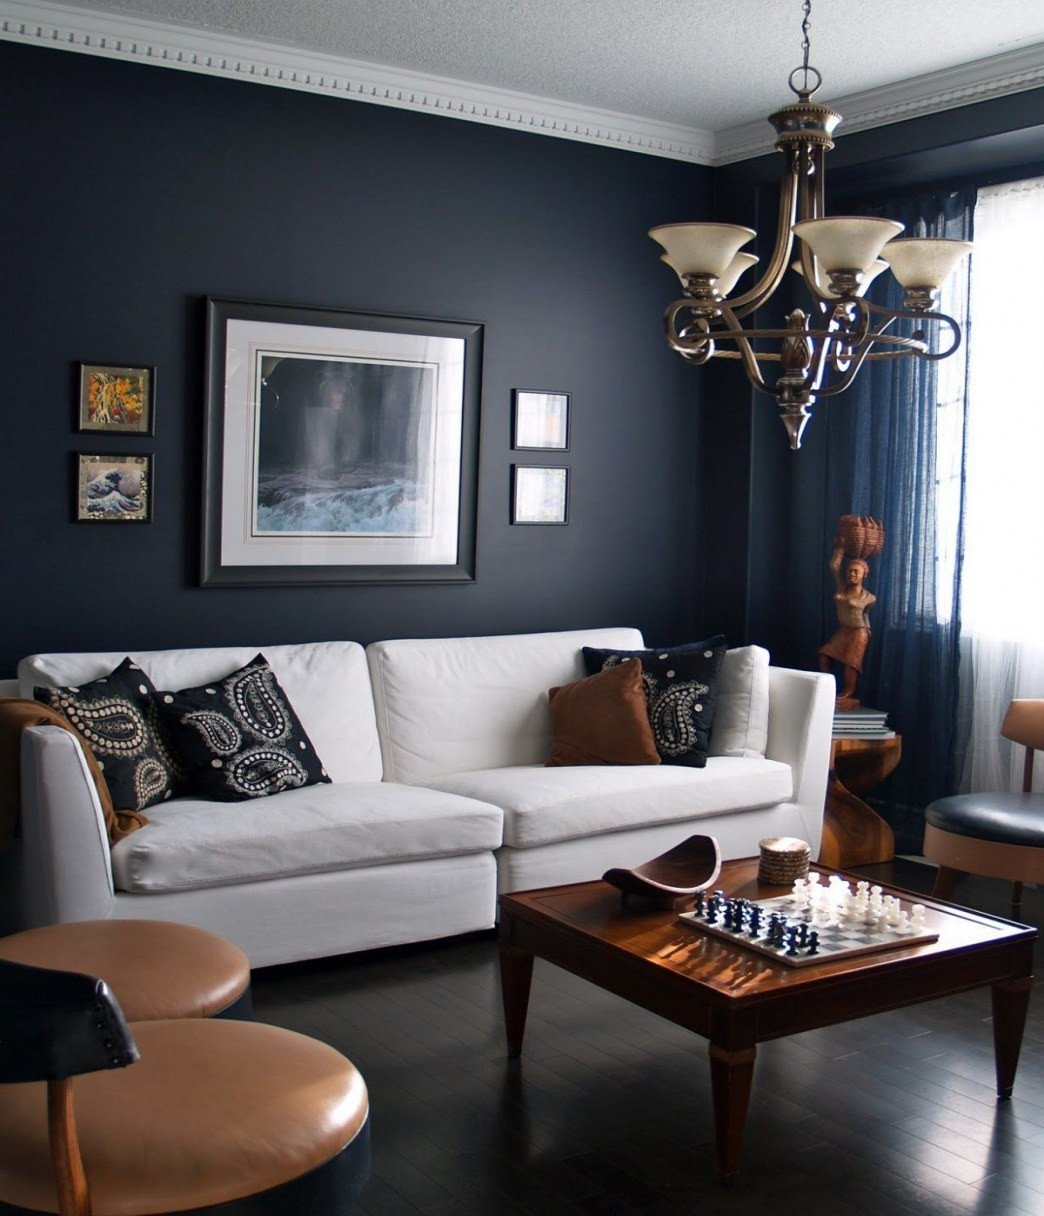 Lavender and Gray Bedroom Elegant Grey and Cream Living Room 54 Beautiful Purple and Cream